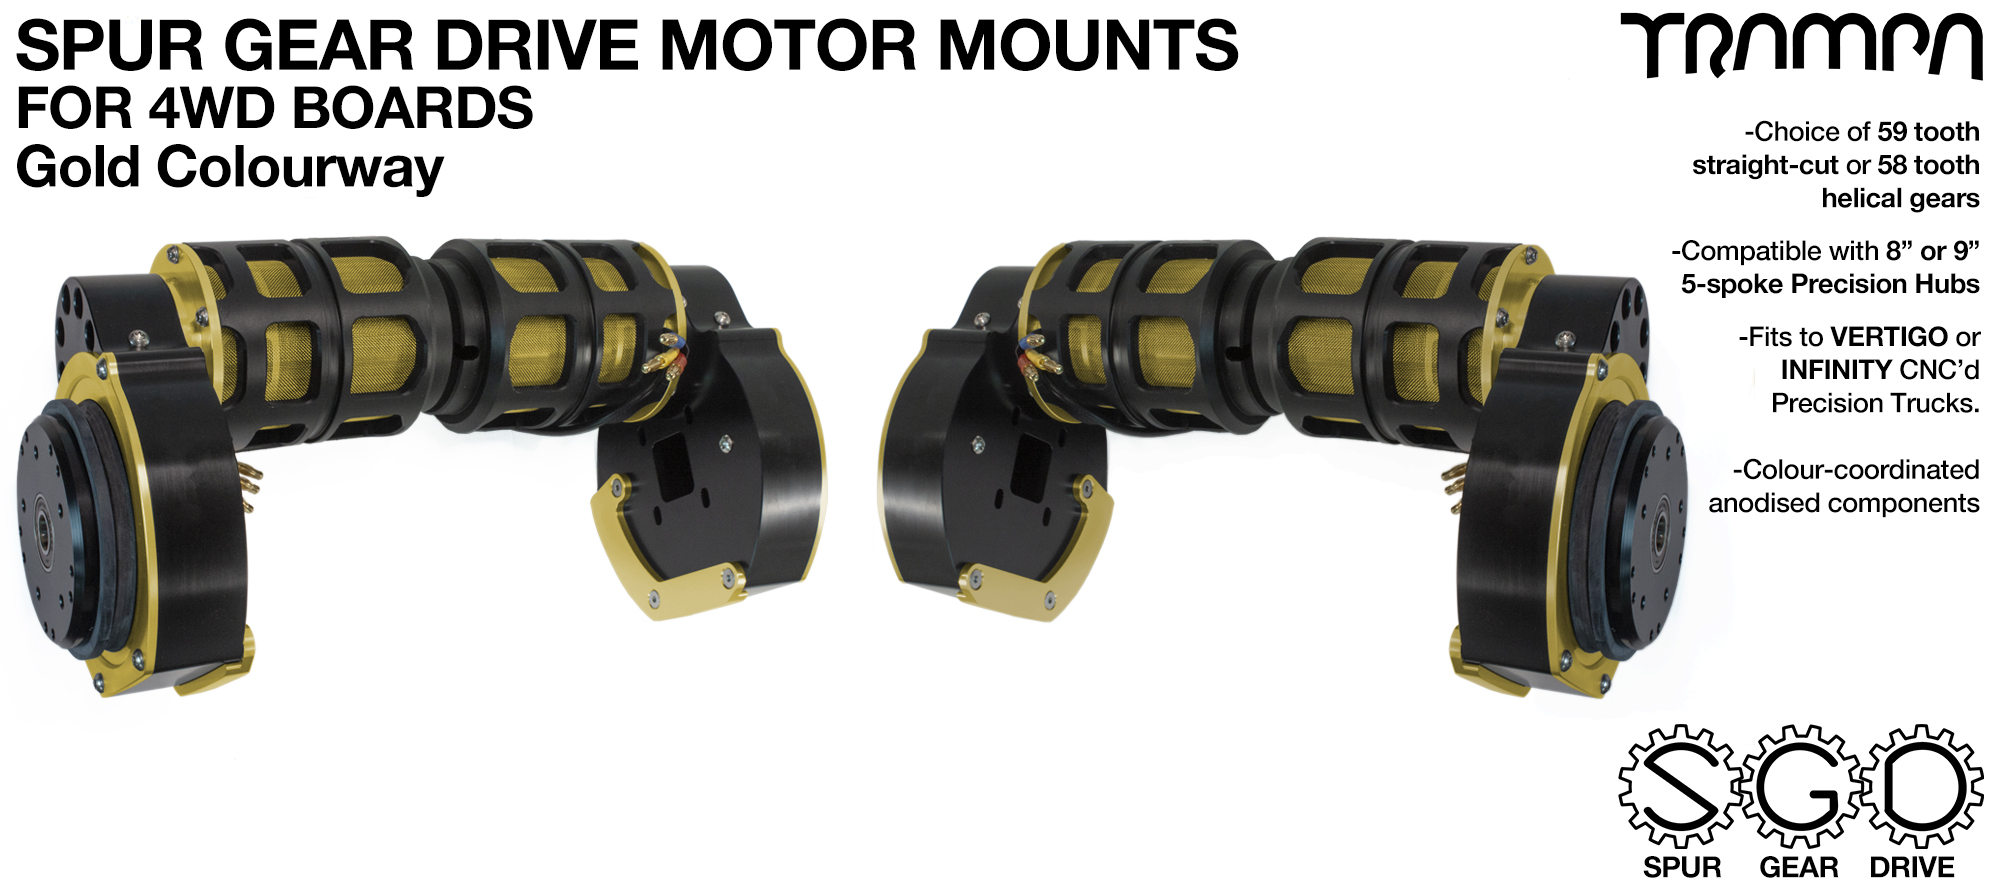 GOLD 4WD Spur Gear Drive Motor Mount